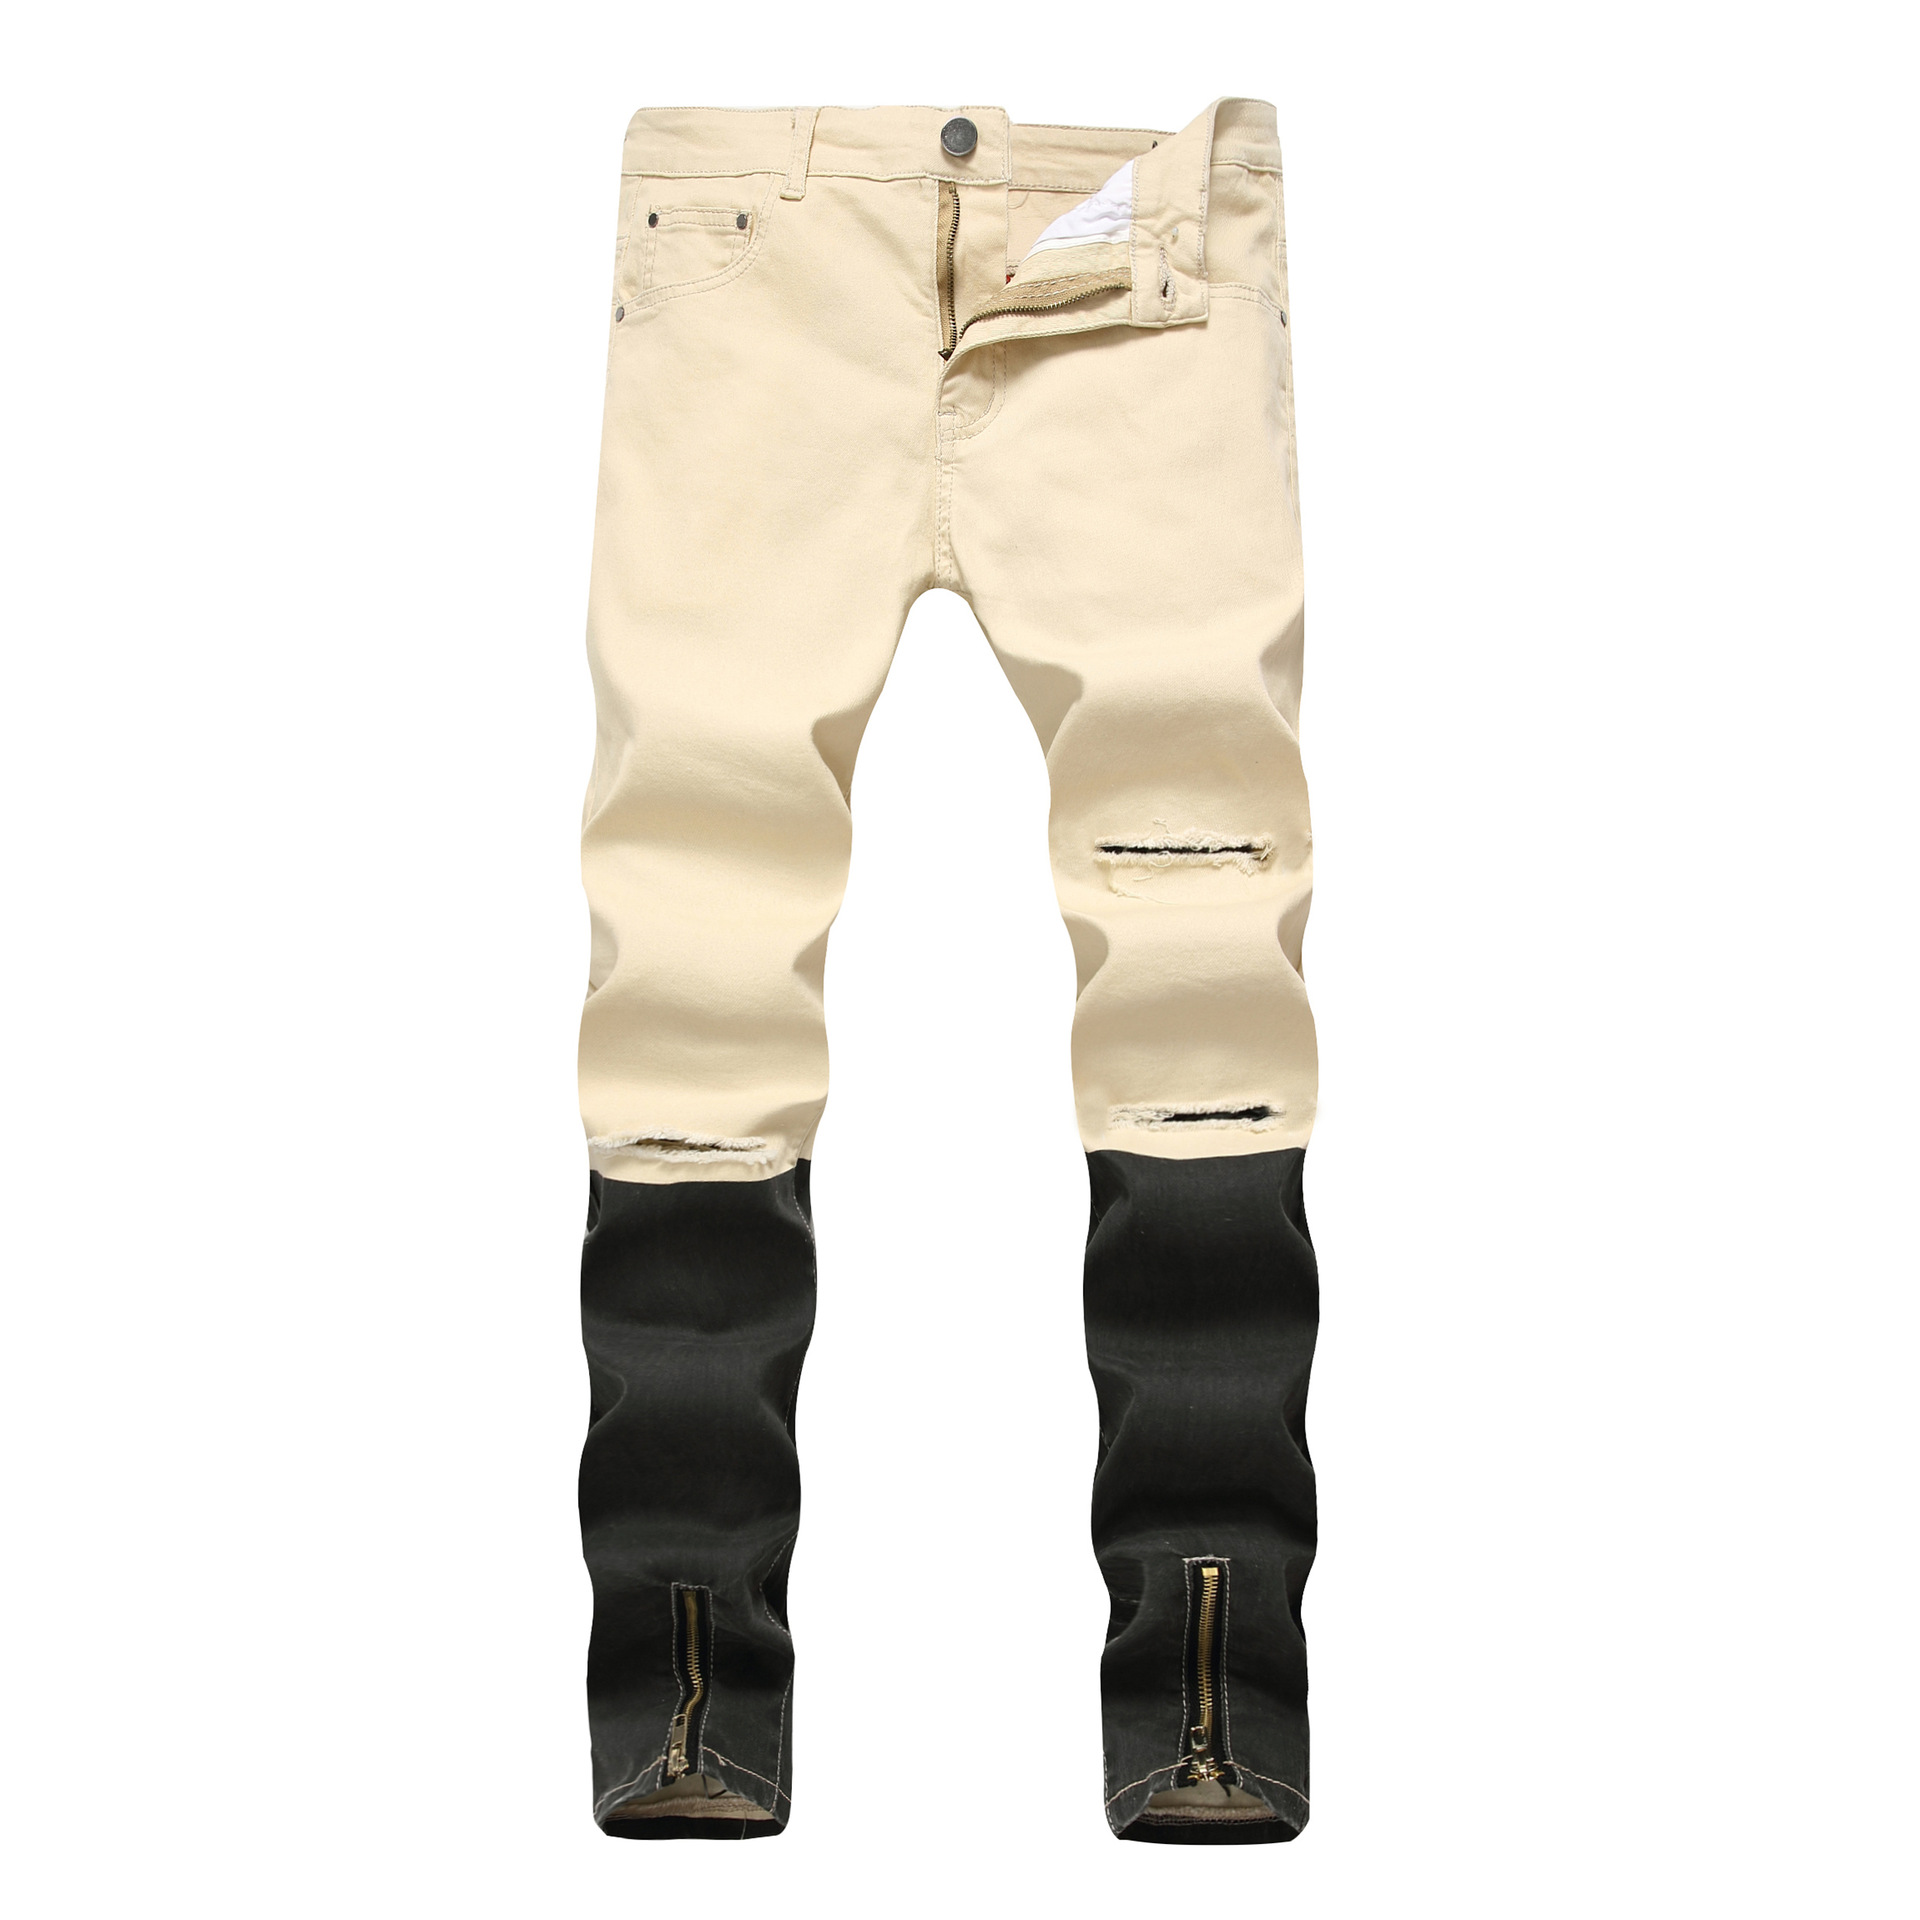 High Street Distressed Hole Colorblock Jeans Mens Front Ankle Zipper Slim Fit Ripped Denim Pants Europe Youth Fashion Trousers